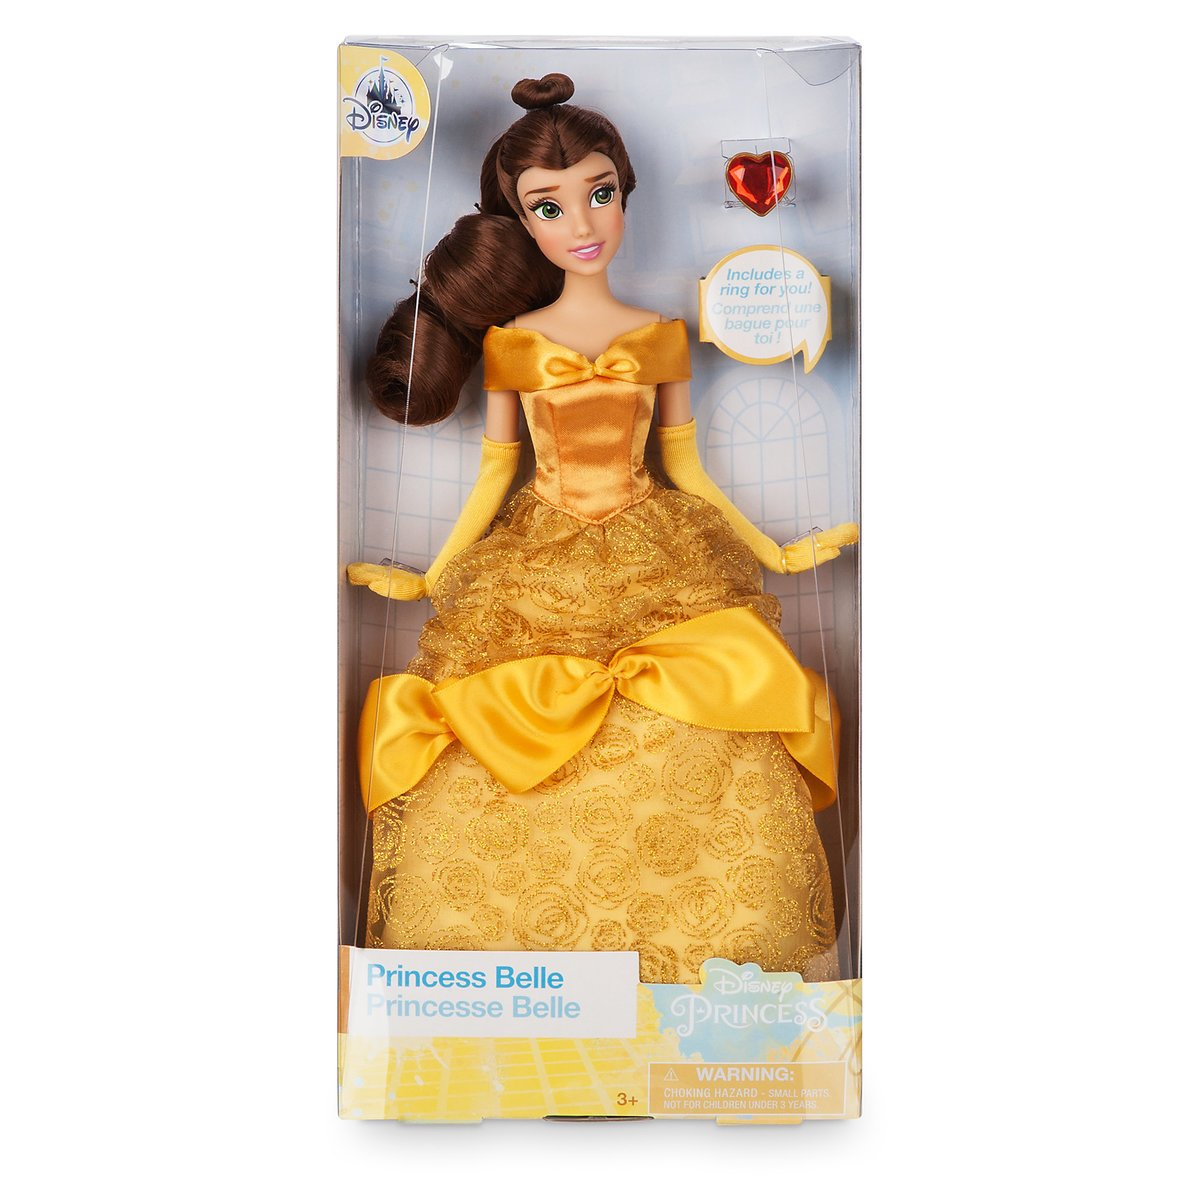 Disney Princess Belle Classic Doll with Ring New with Box